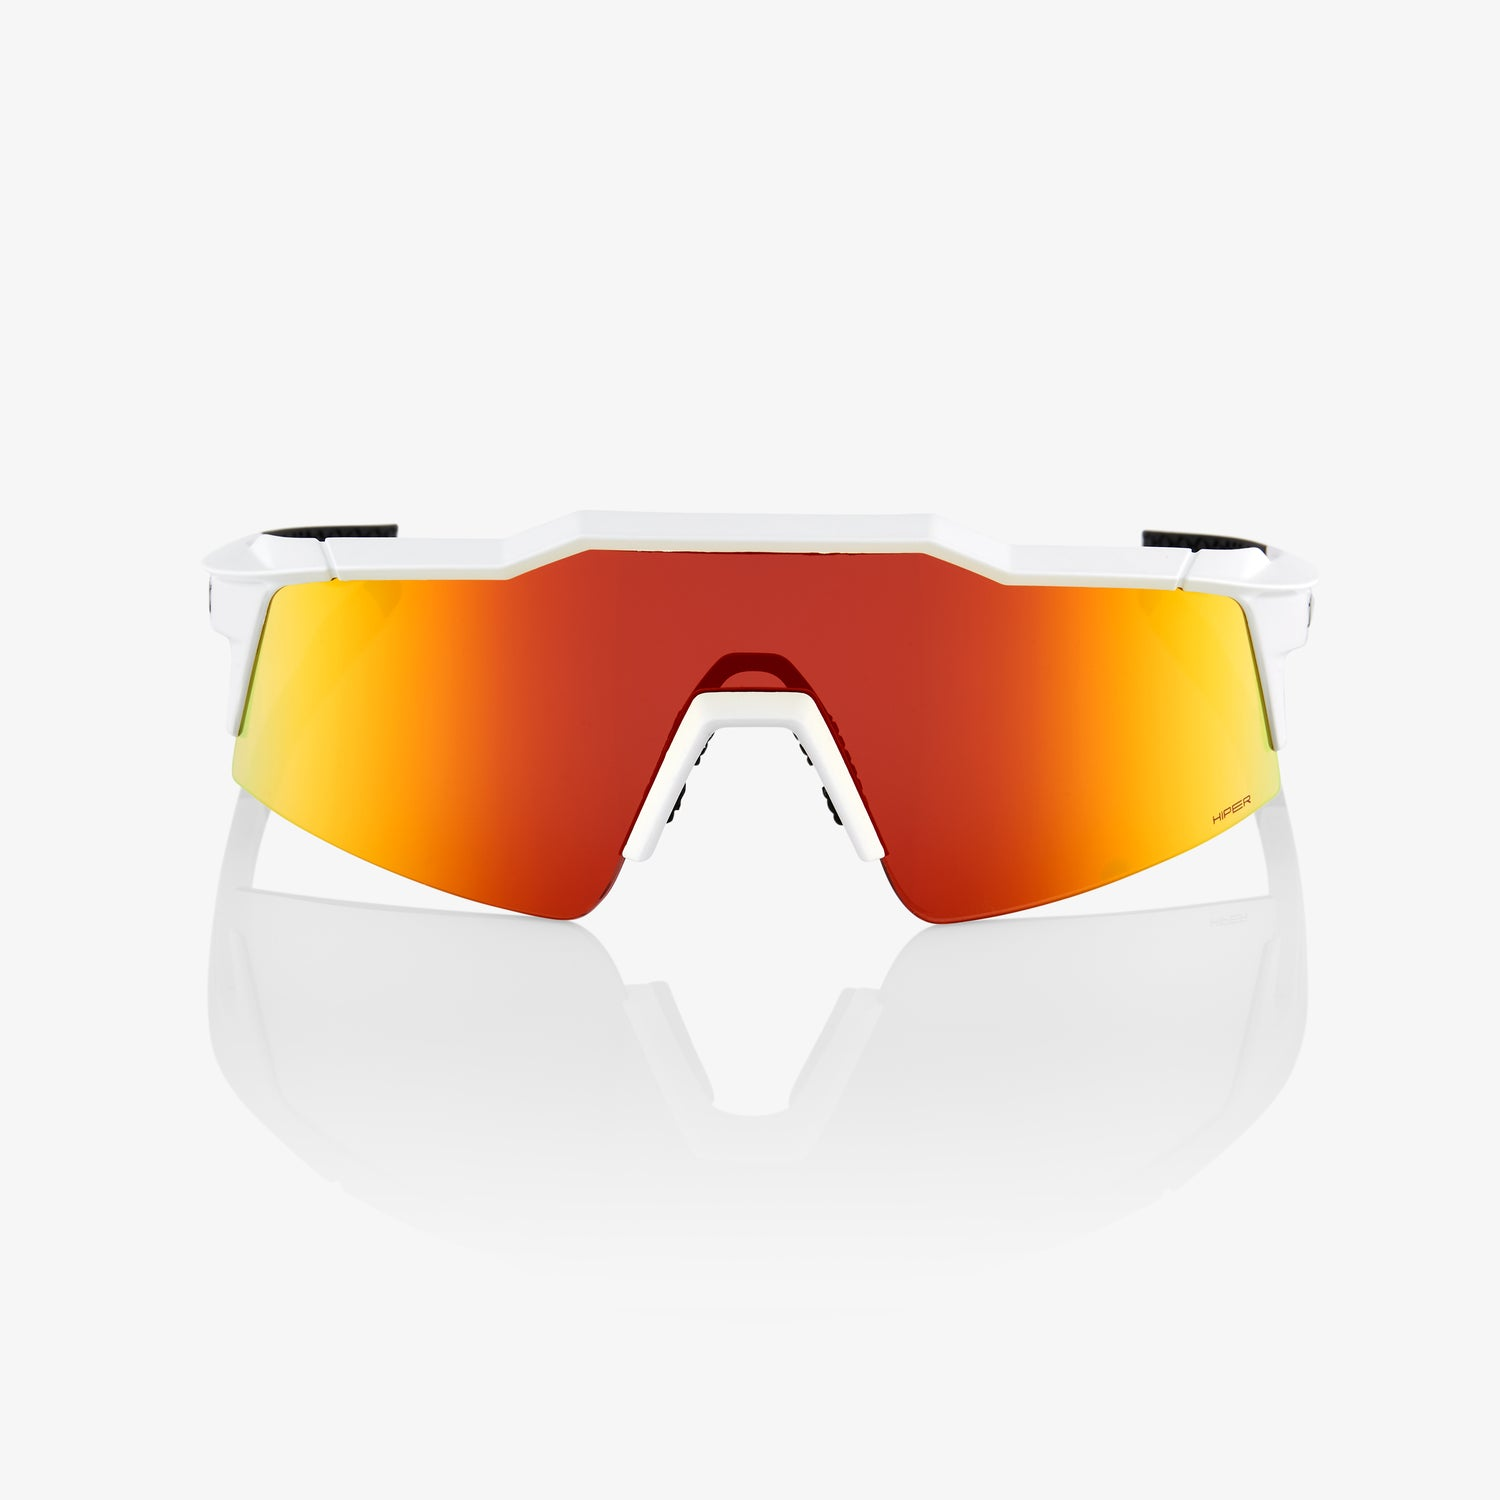 SPEEDCRAFT SL - Soft Tact Off White - HiPER Red Multilayer Mirror Lens